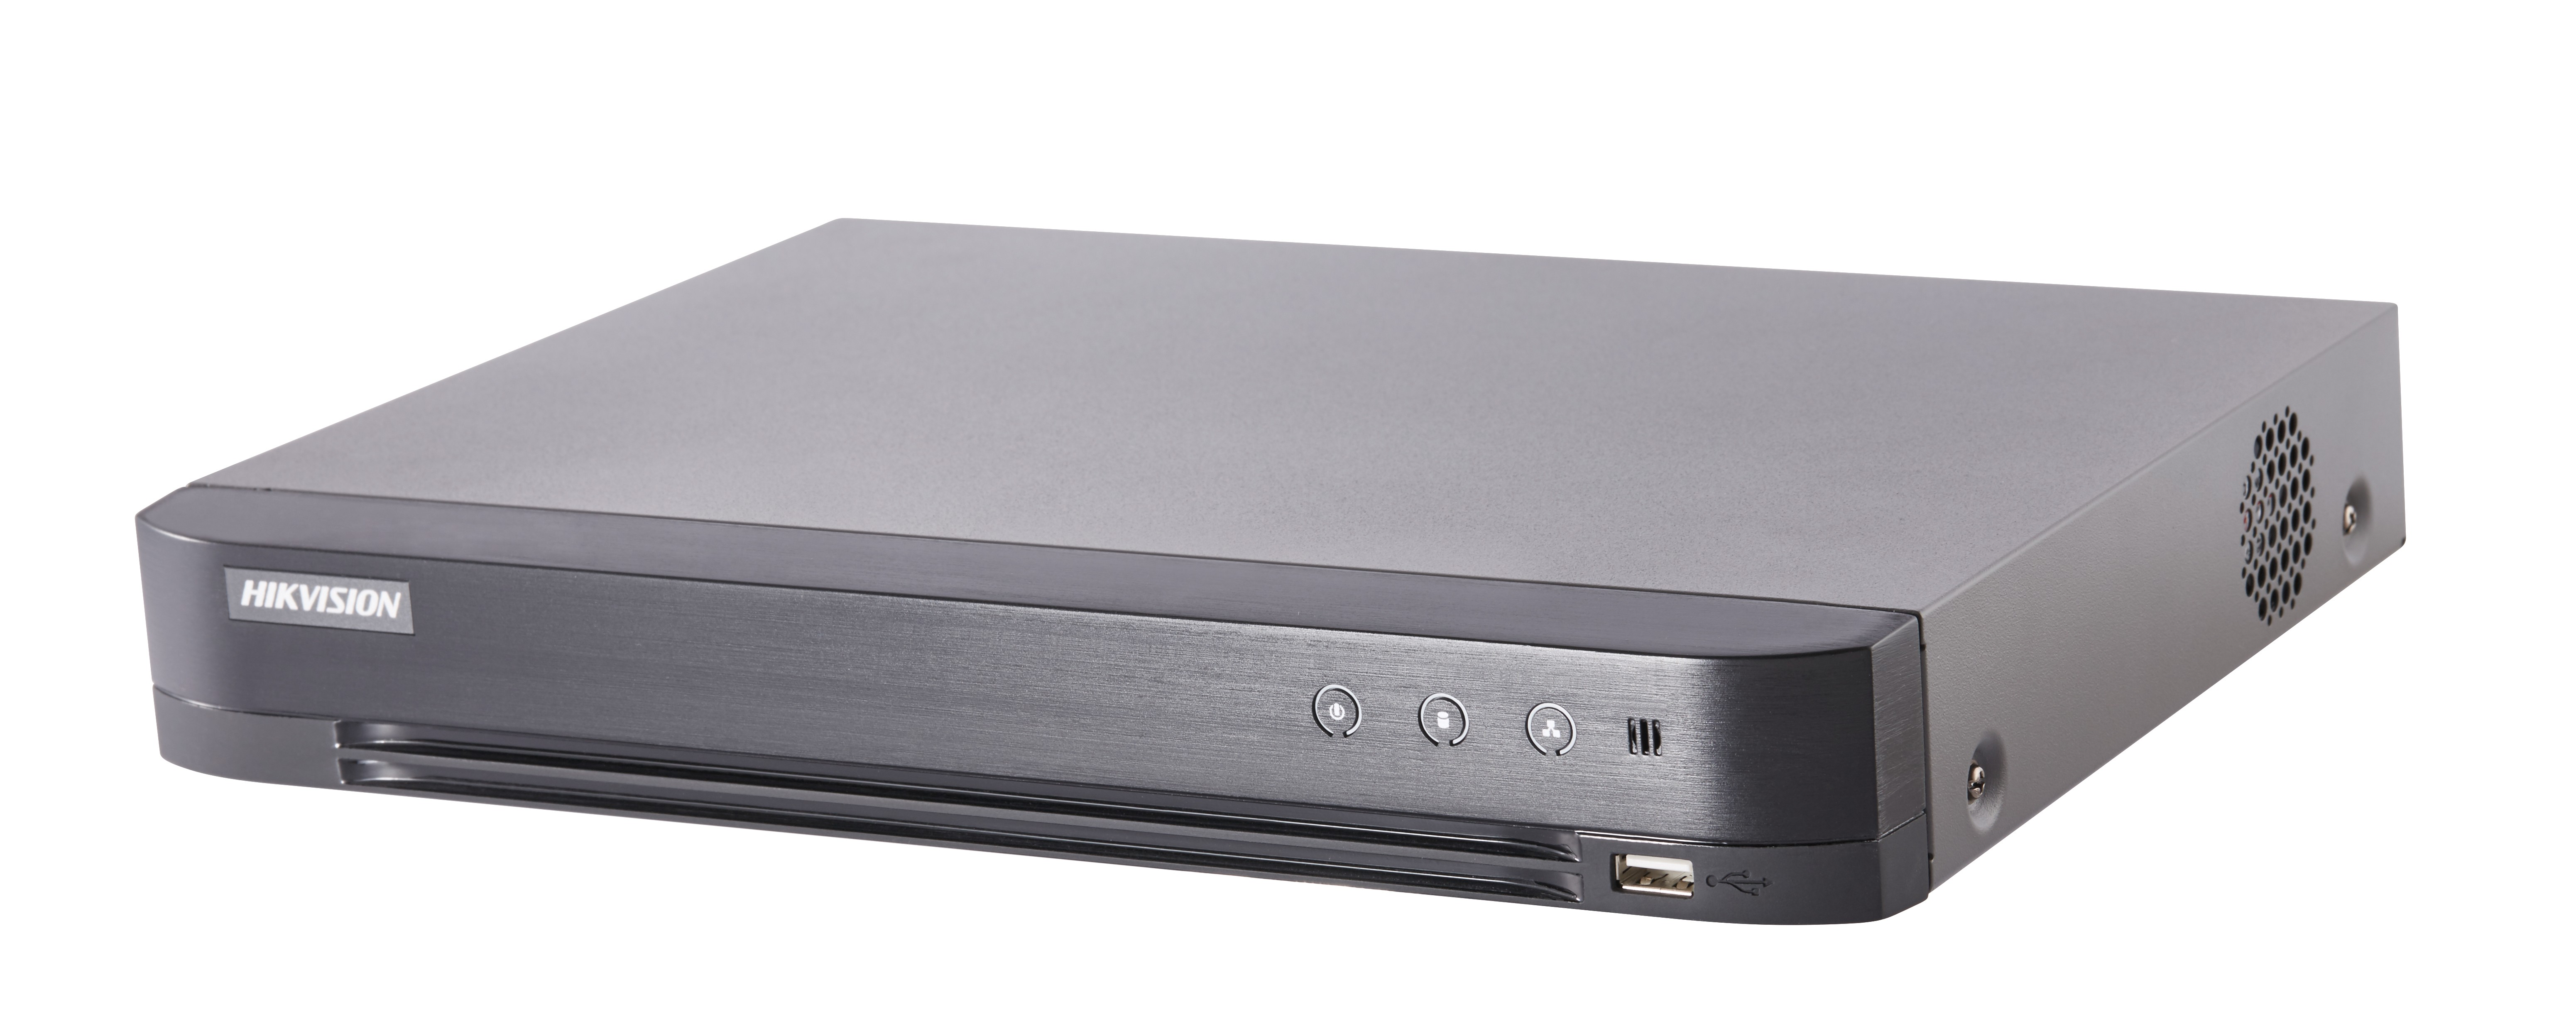 Hikvision IDS-7216HQHI-K2/4S(B) 2nd Generation 16 Channel AcuSense Turbo DVR